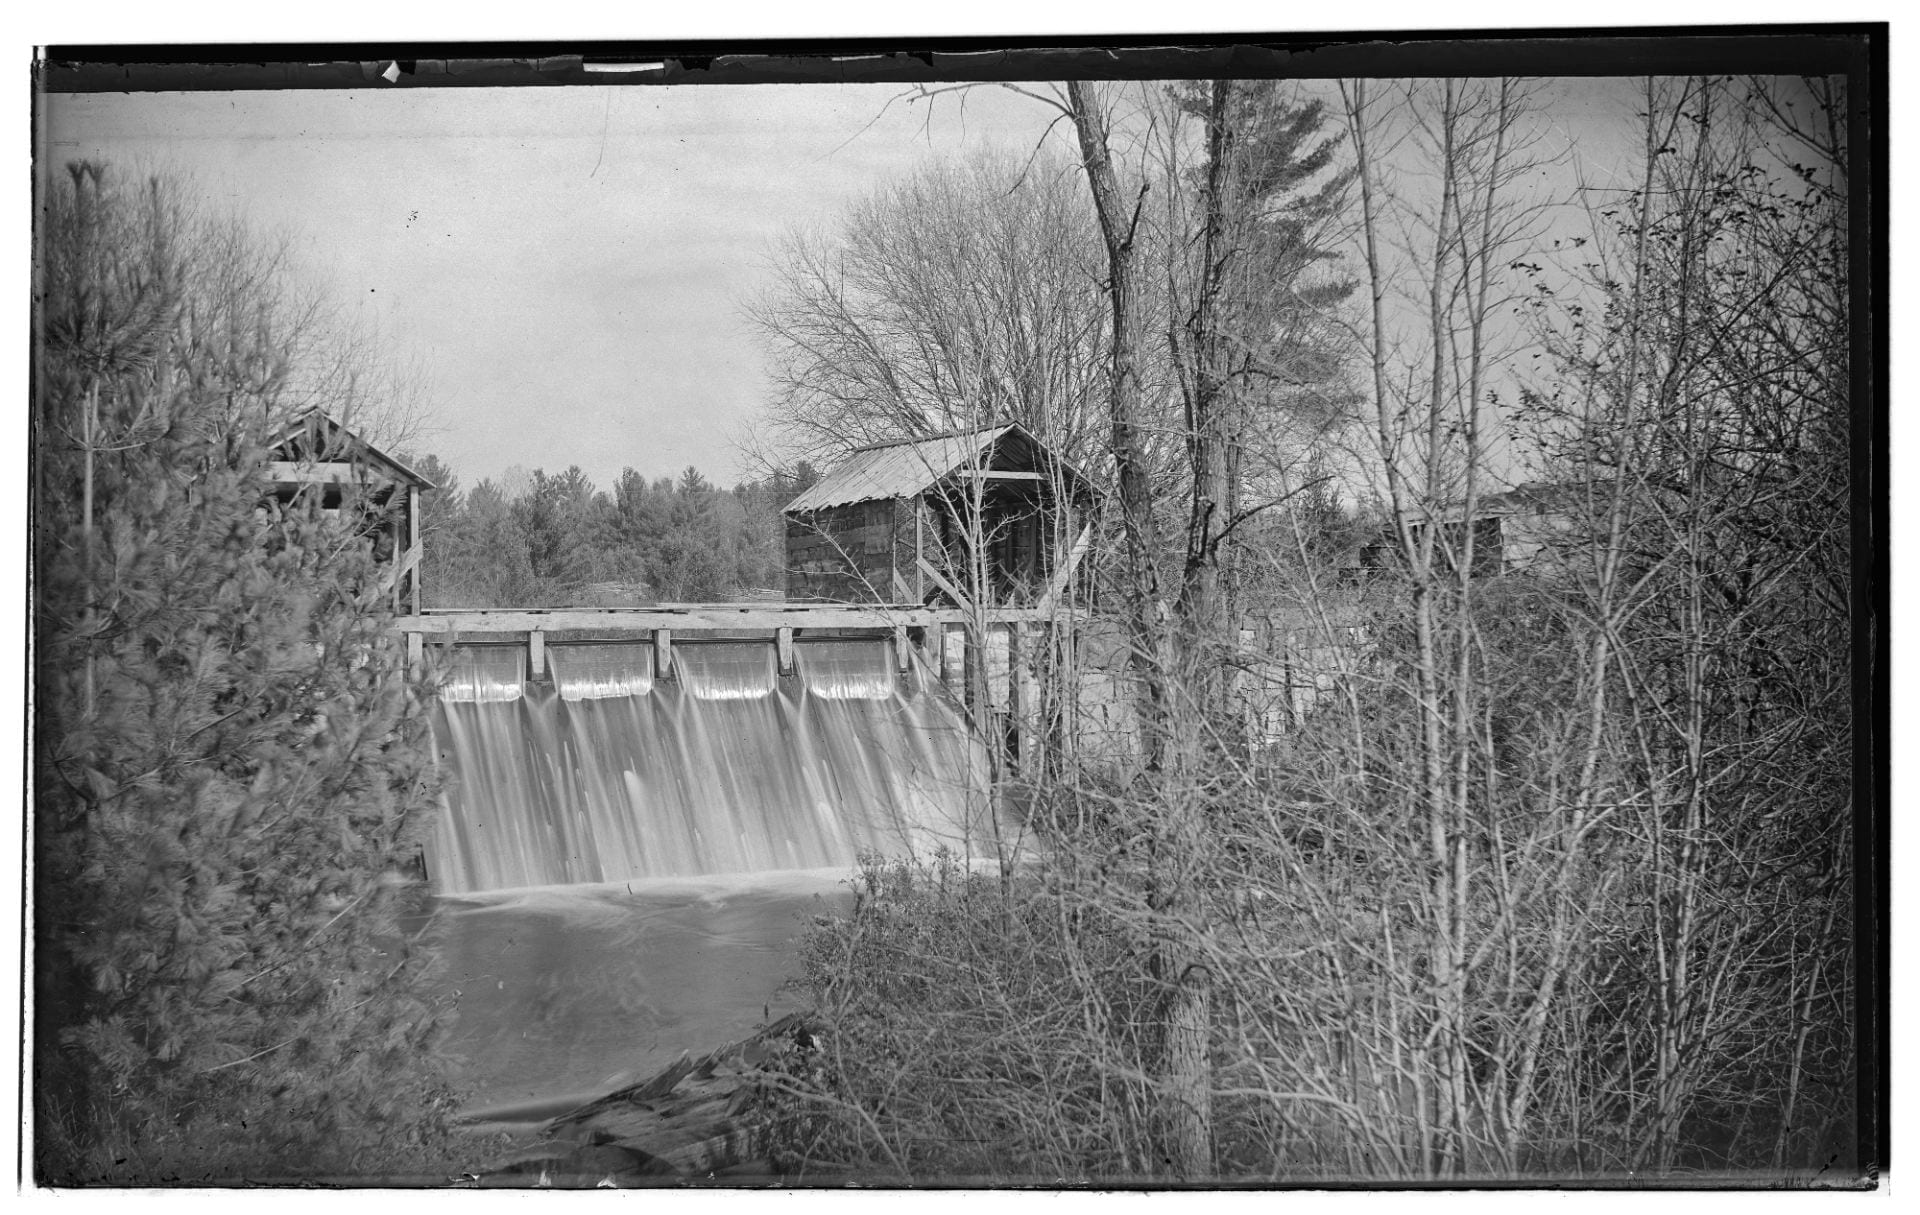 Image: water flowing over the dam